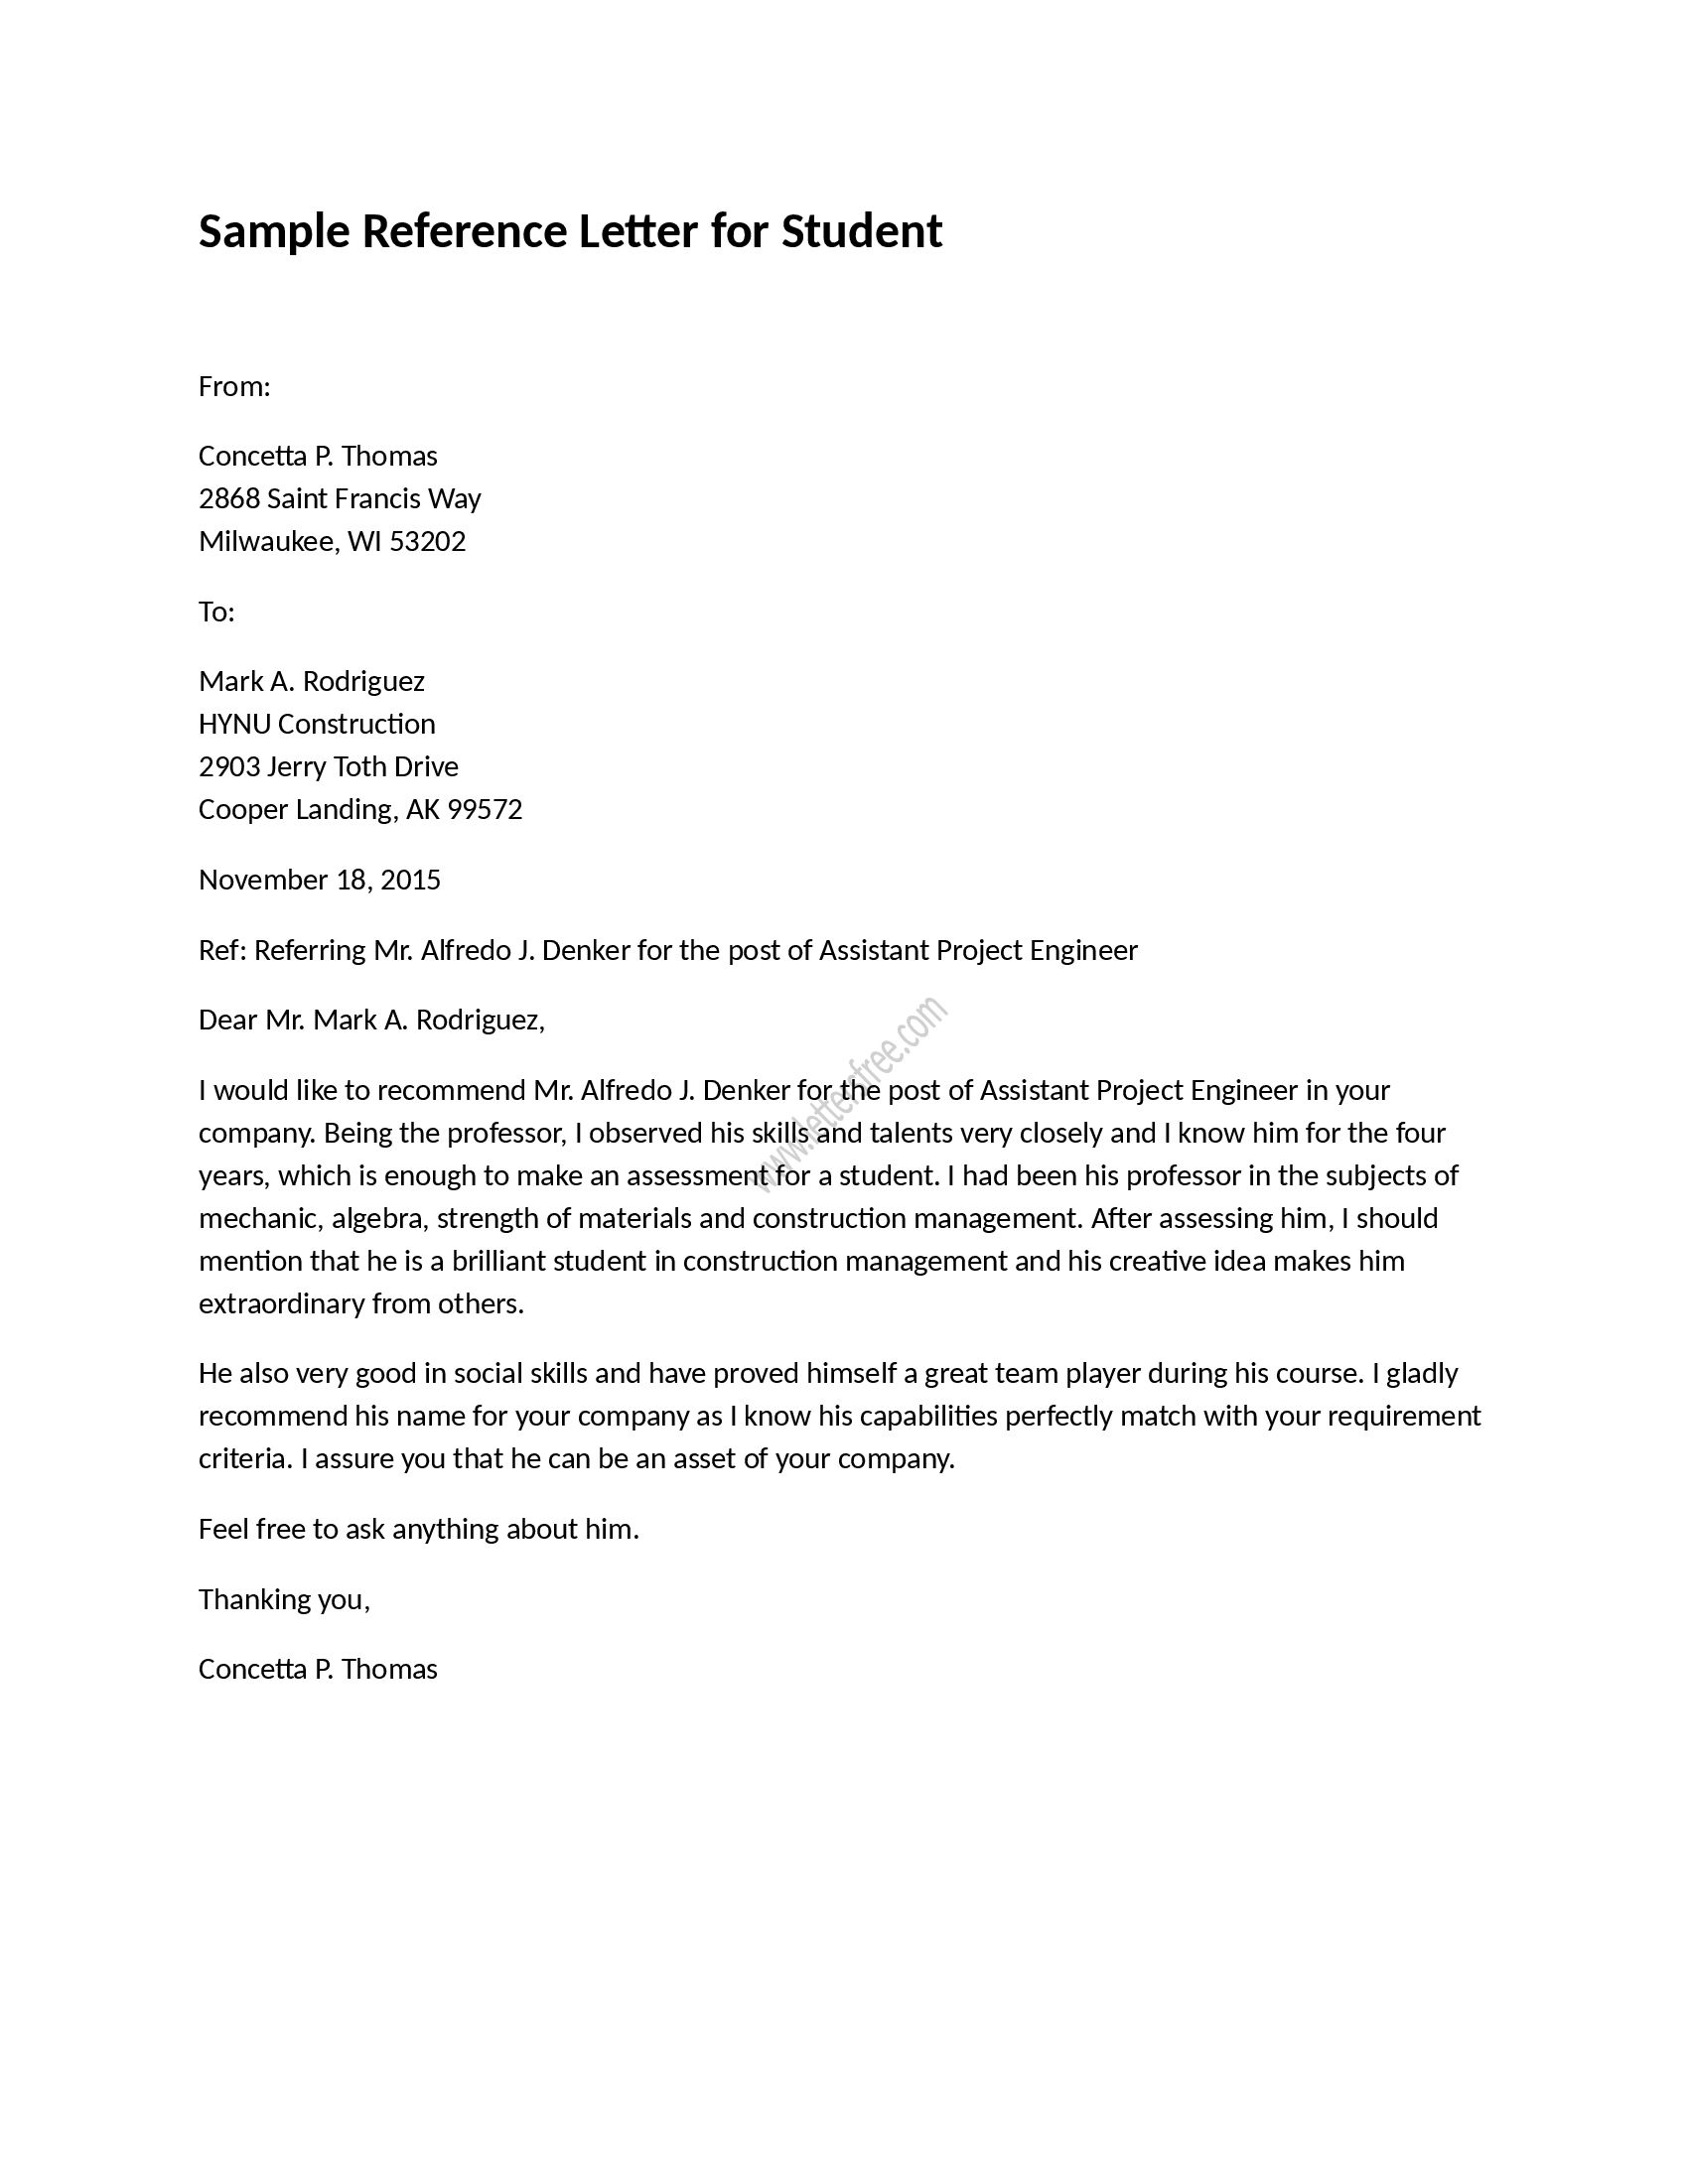 Reference Letter for Student Reference letter for